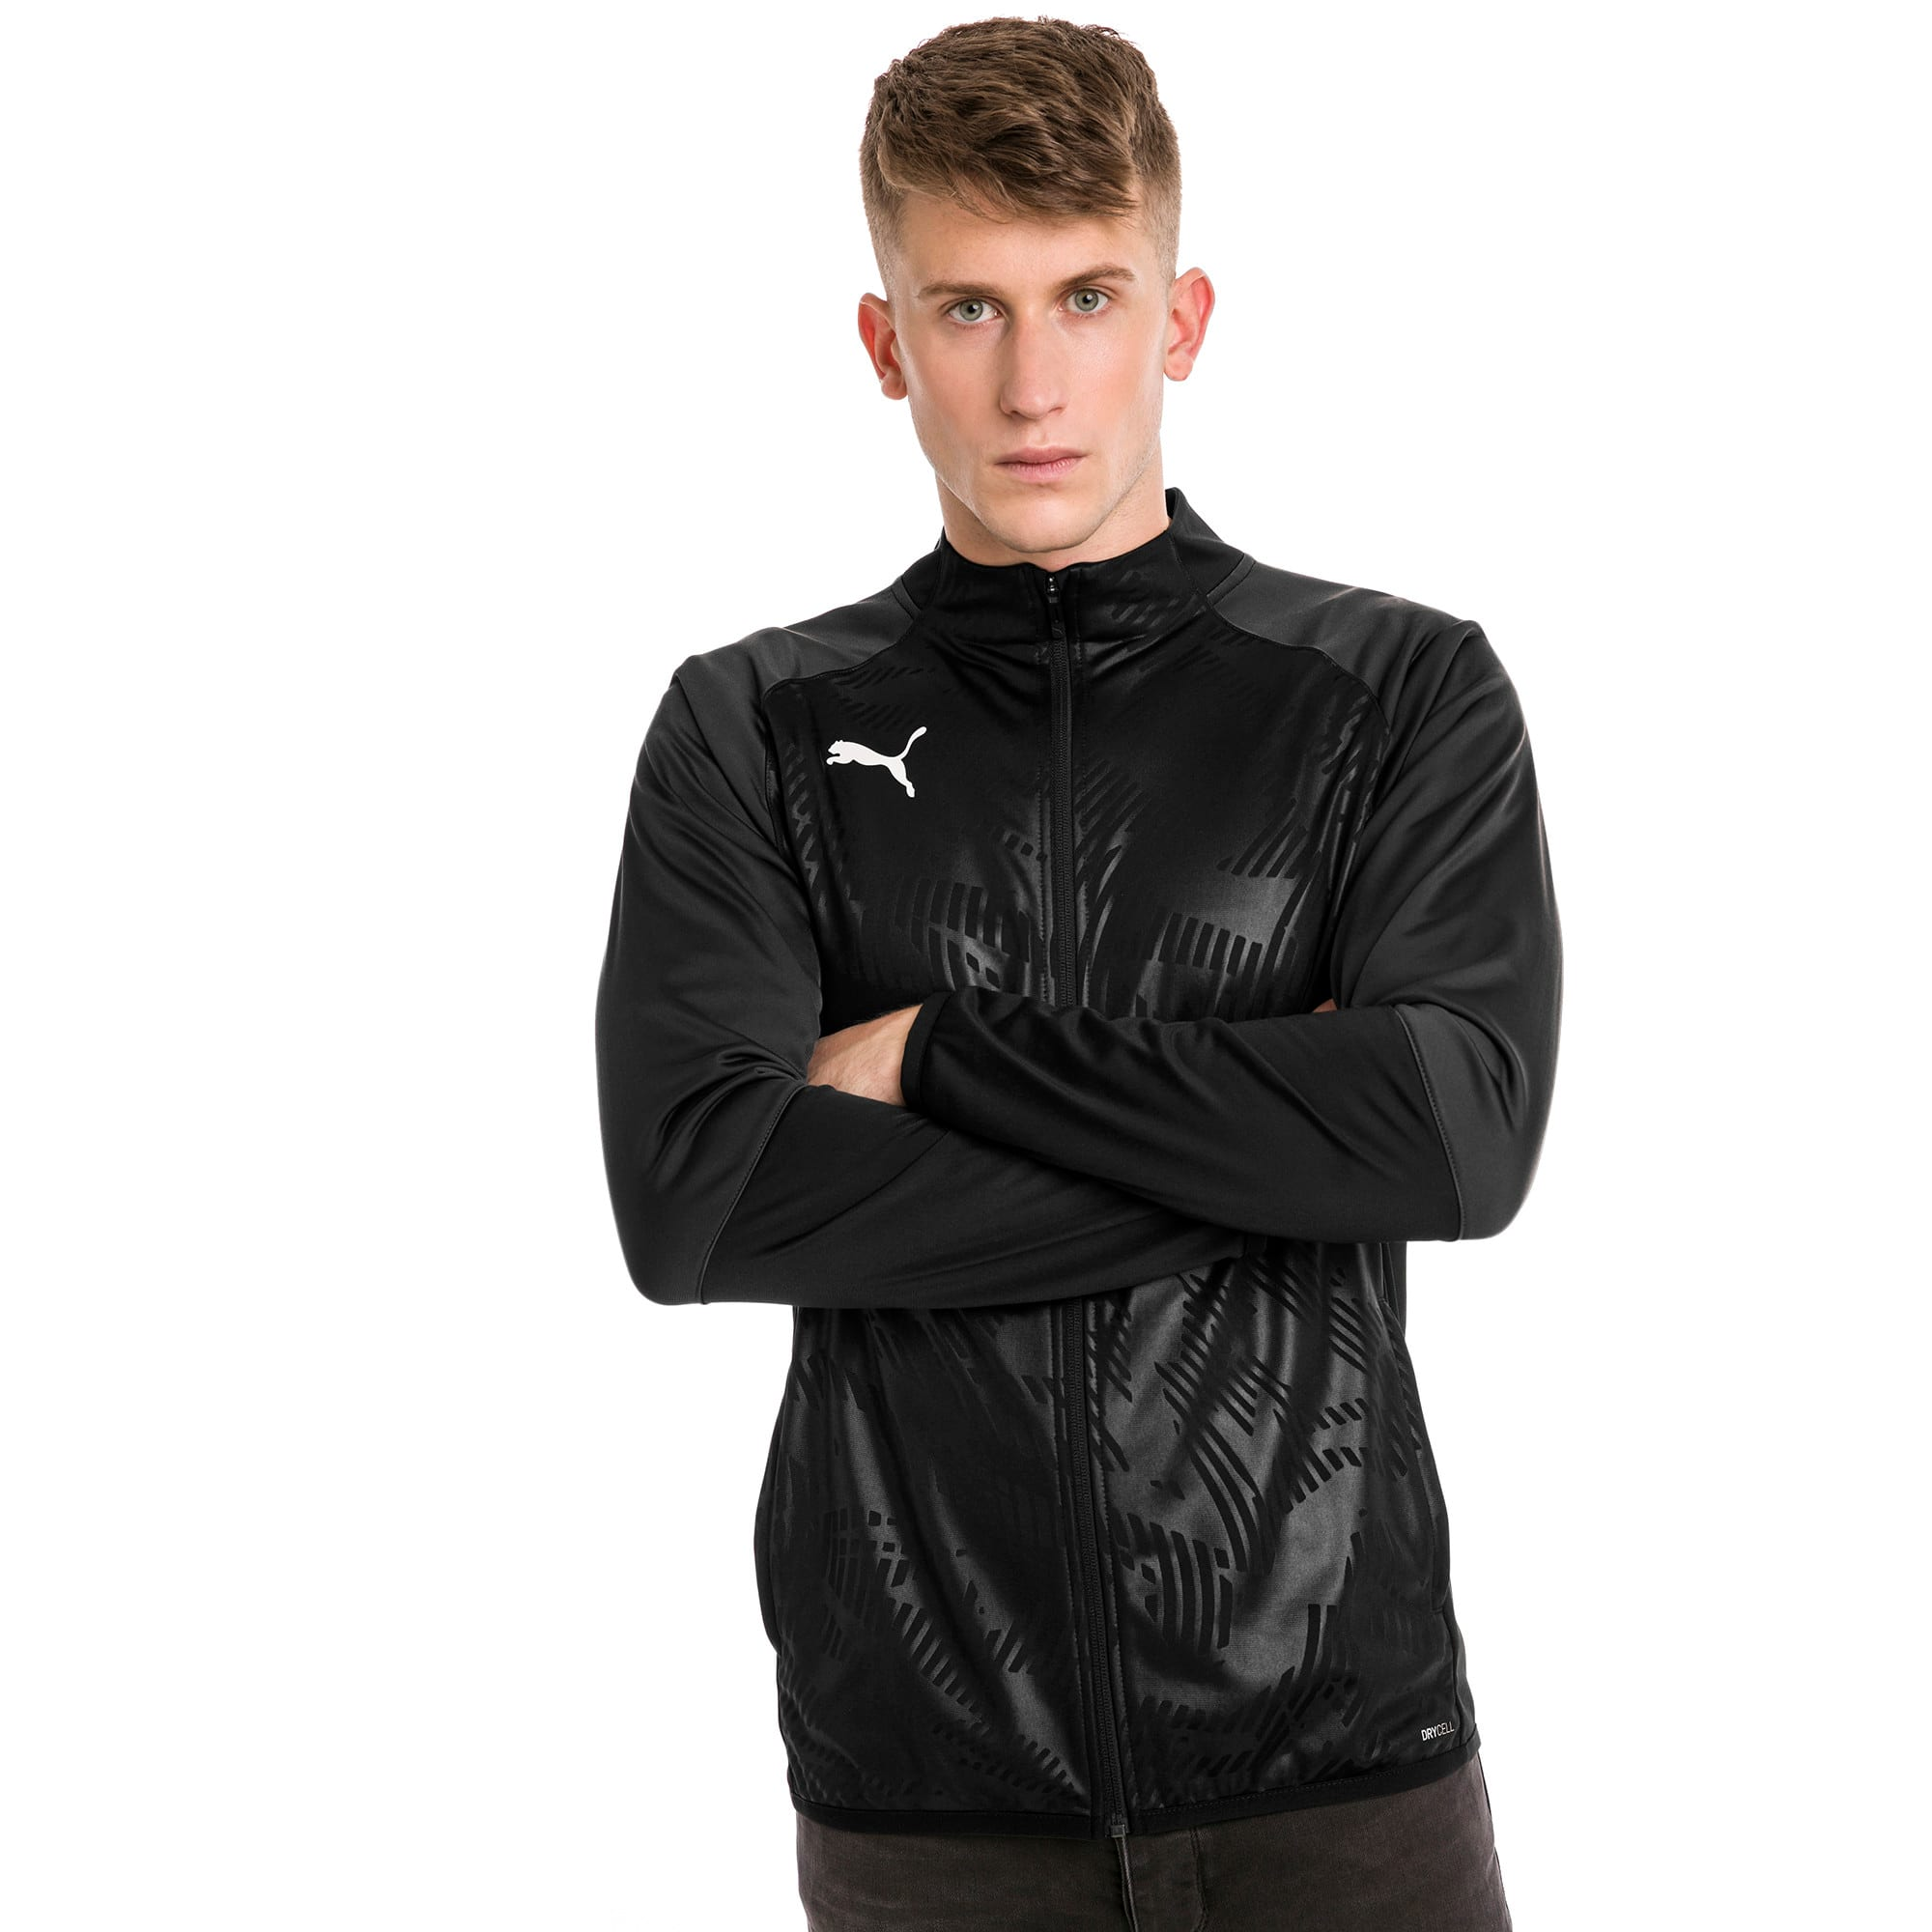 Thumbnail 1 of CUP Training Poly Core Herren Fußball Trainingsjacke, Puma Black-Asphalt, medium